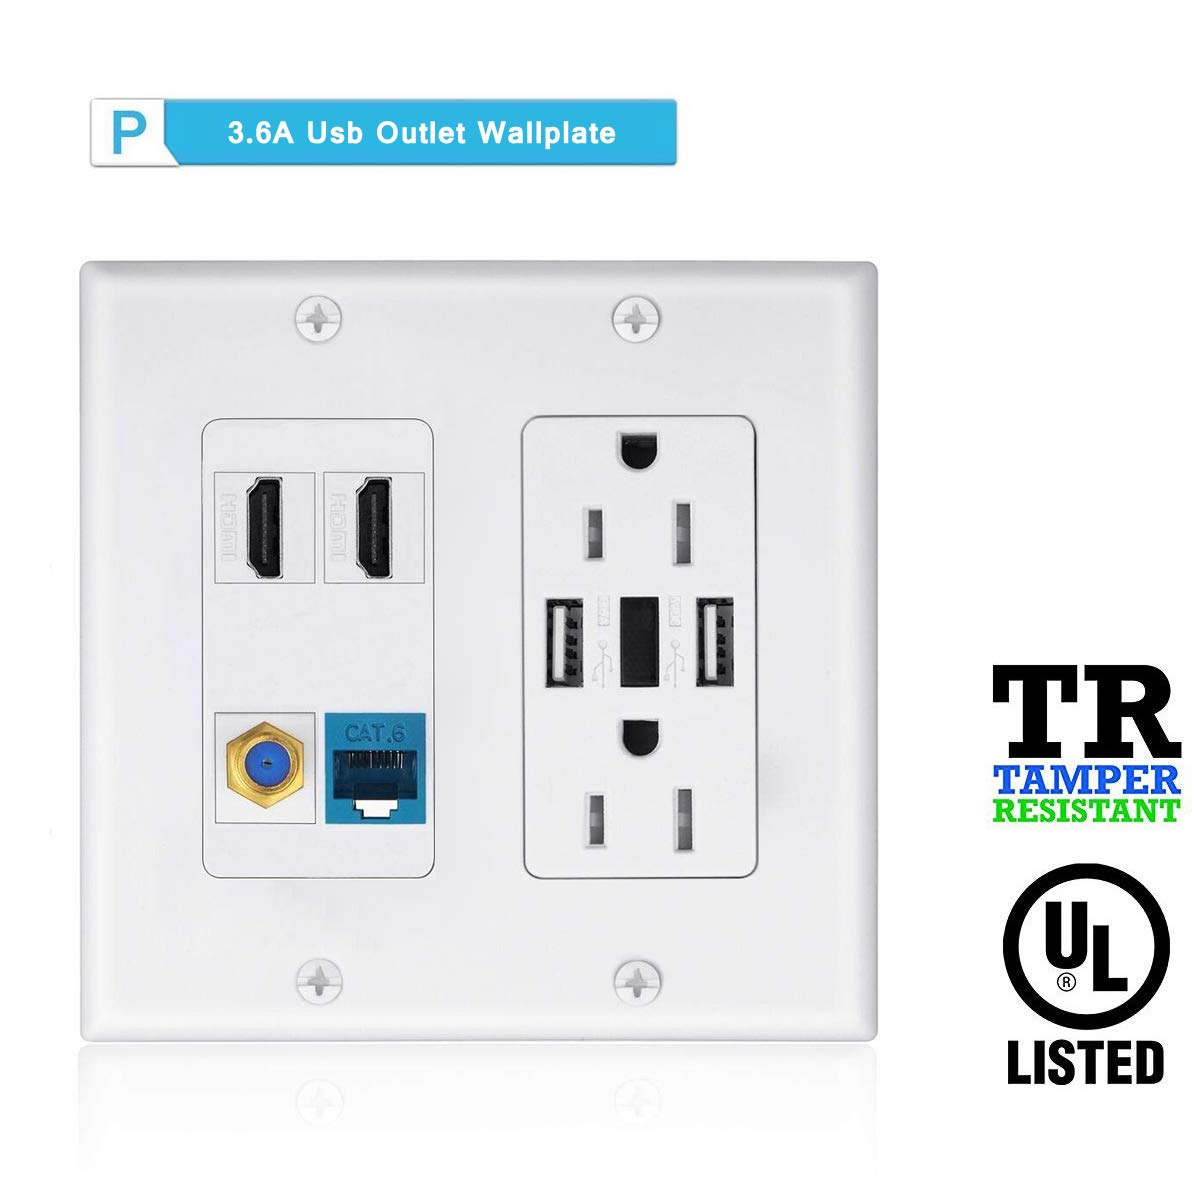 Wallplate Charger Outlet USB,2 Power Outlet 15A with Dual 3.6A USB Charger Port Wall Plate with LED Lighting, 2 HDMI HDTV + 1 CAT6 RJ45 Ethernet + Coaxial Cable TV F Type Keystone Face Plate White